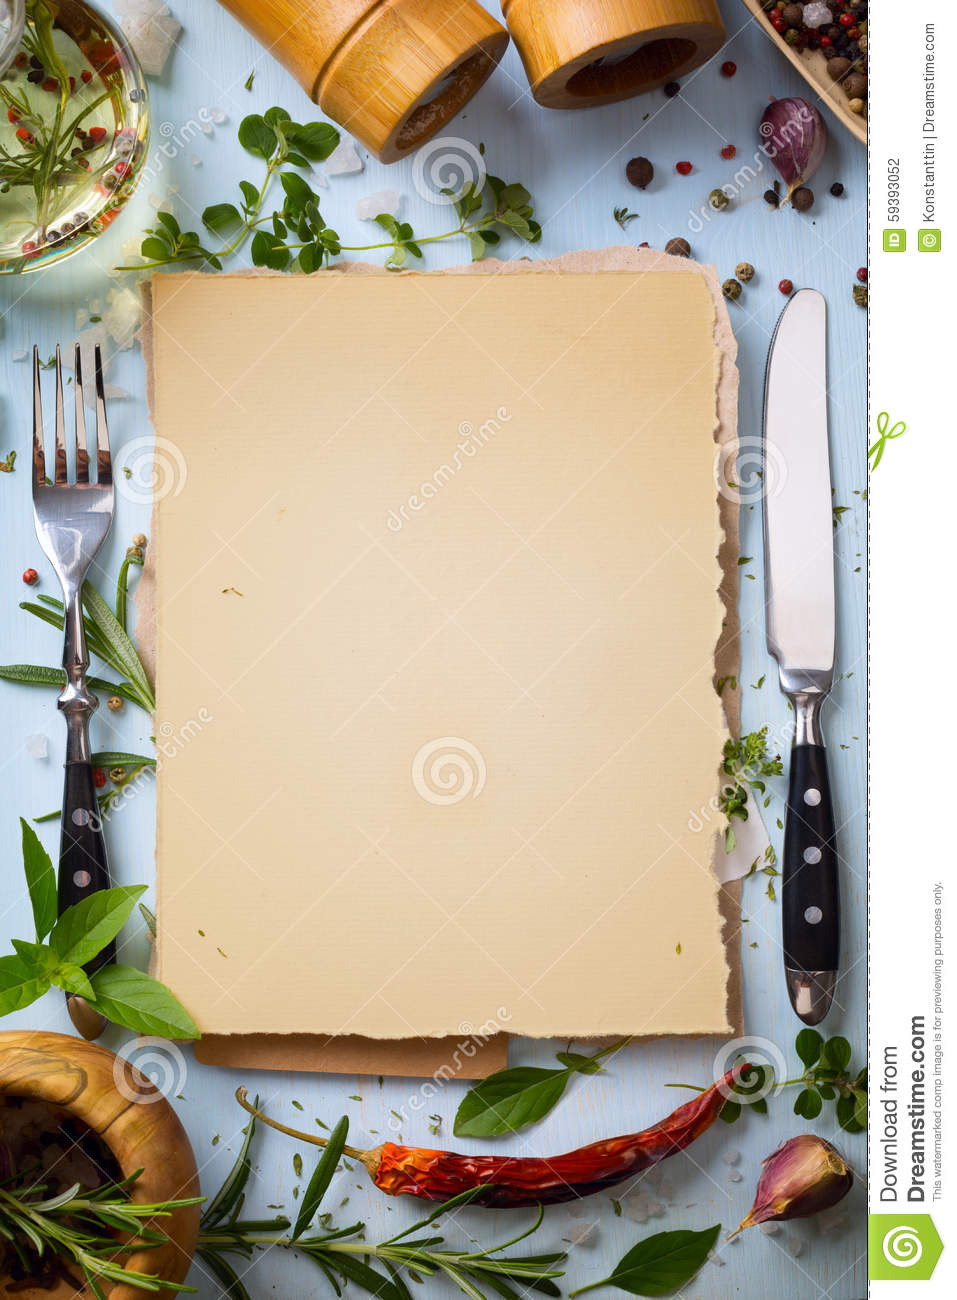 Art Italian Homemade Menu Food Background Stock Photo